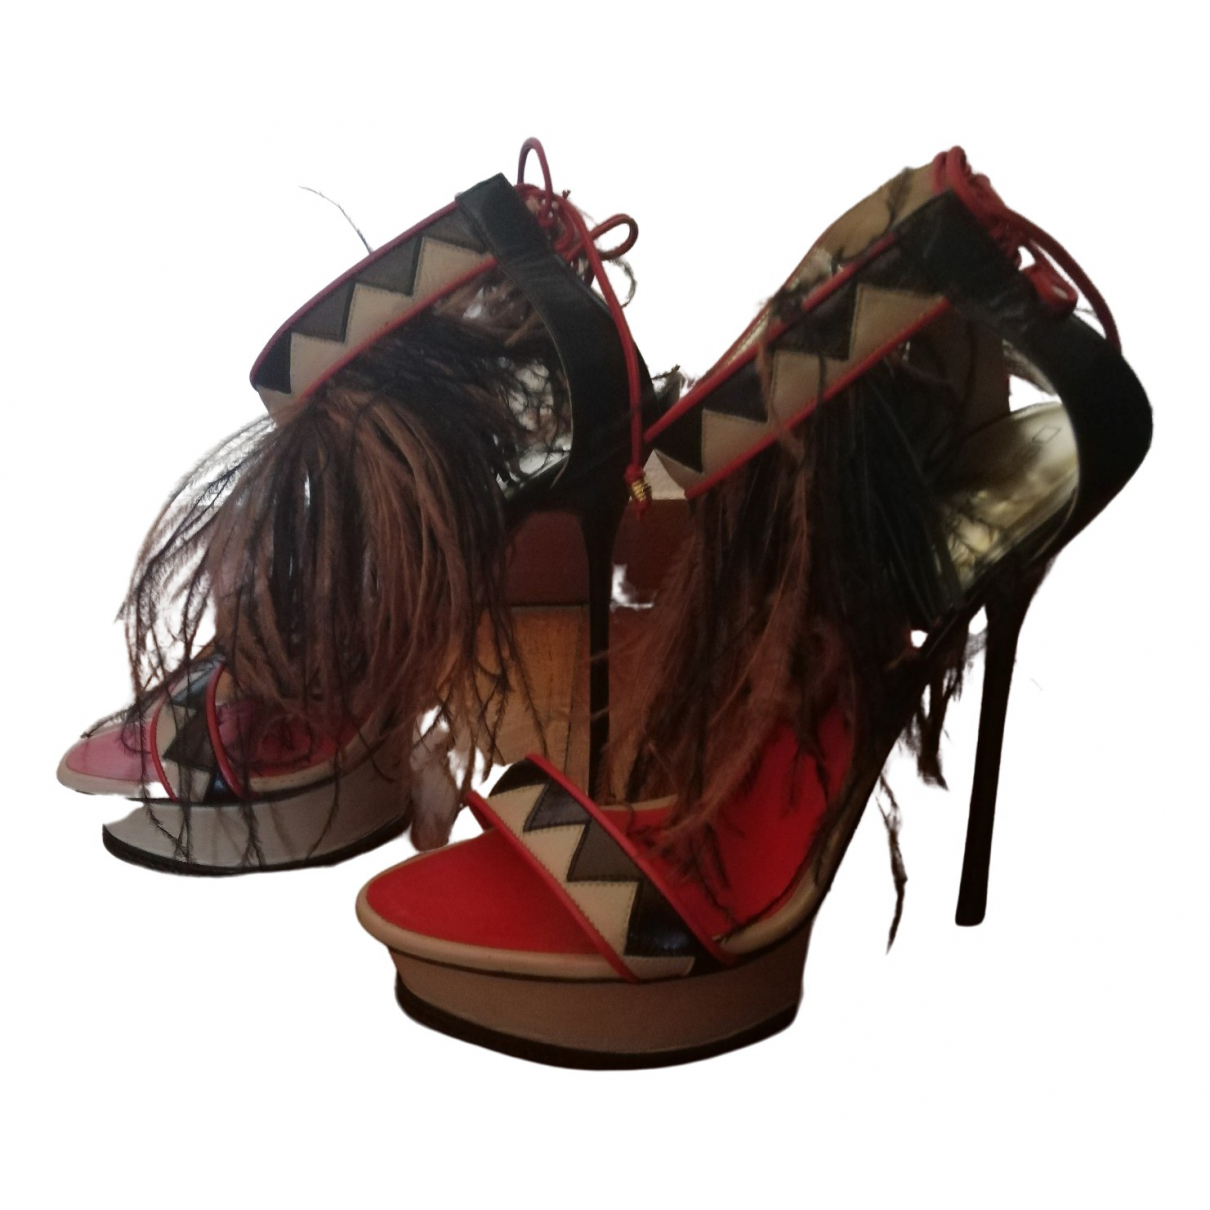 Dsquared2 \N Burgundy Leather Sandals for Women 39 EU